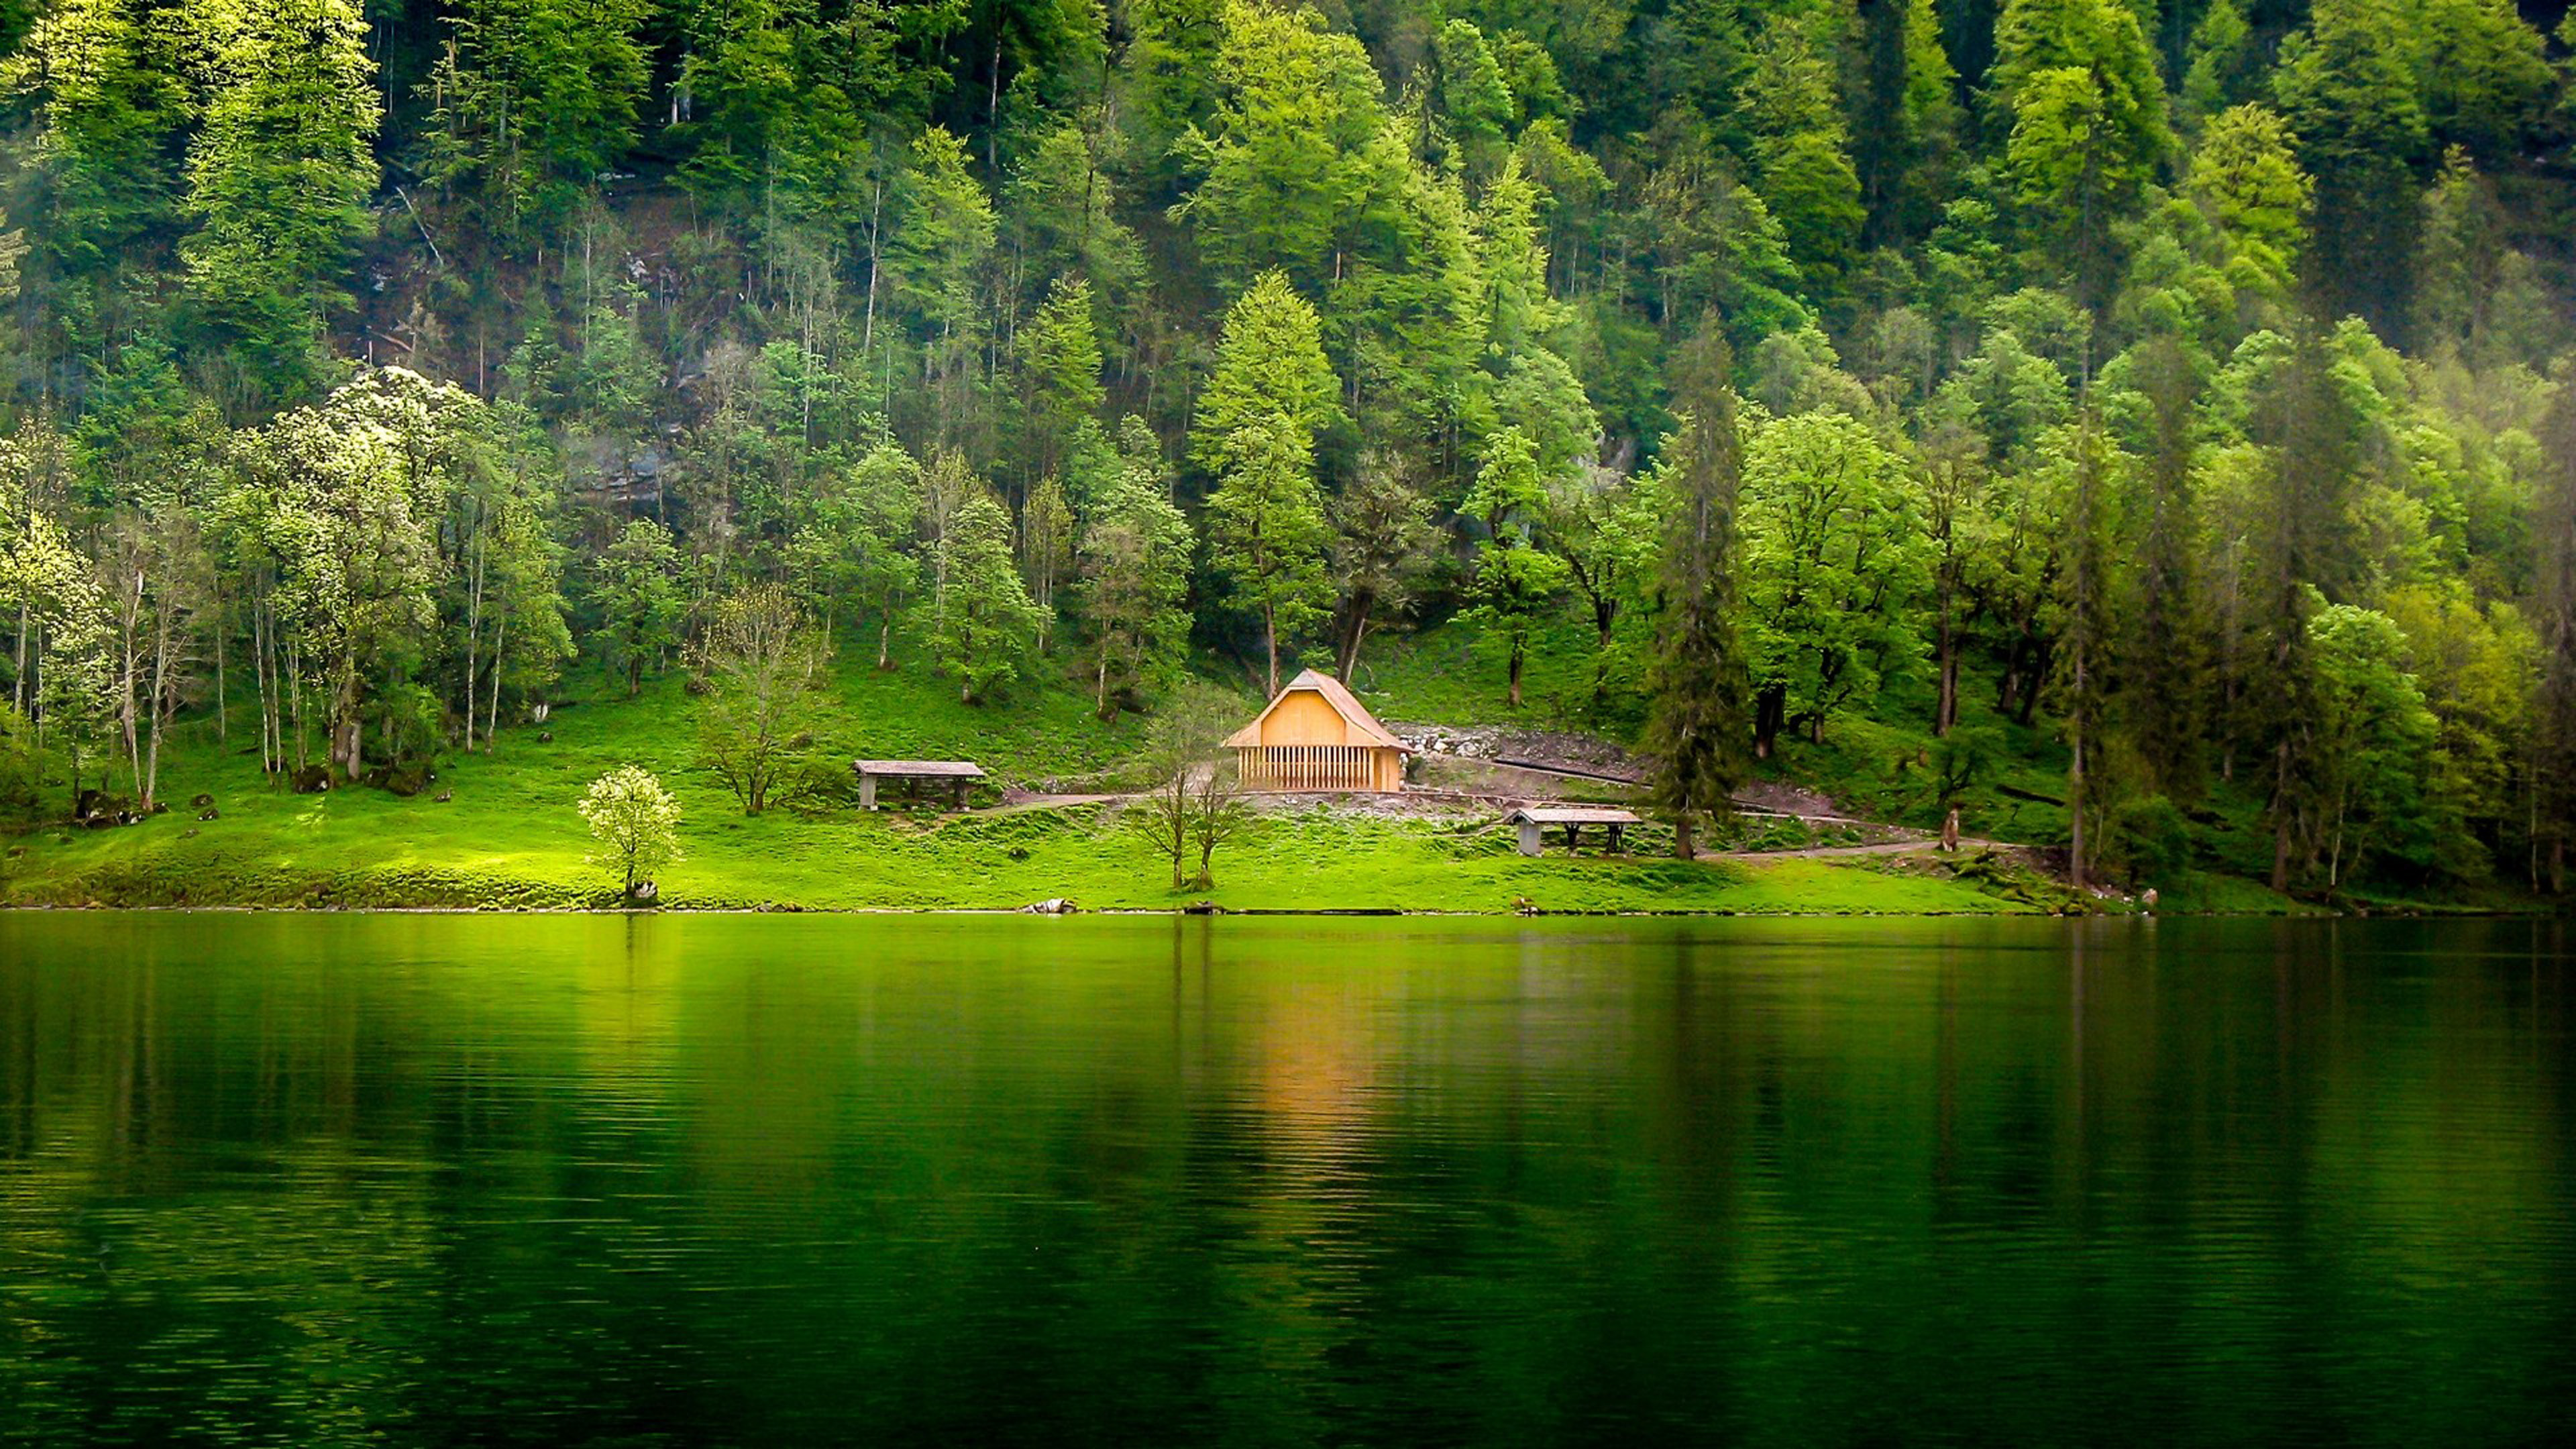 Hd Wallpapers For Laptop 15 6 Inch Screen Green Lake Wooden House Pine Forest Meadow Hd Desktop